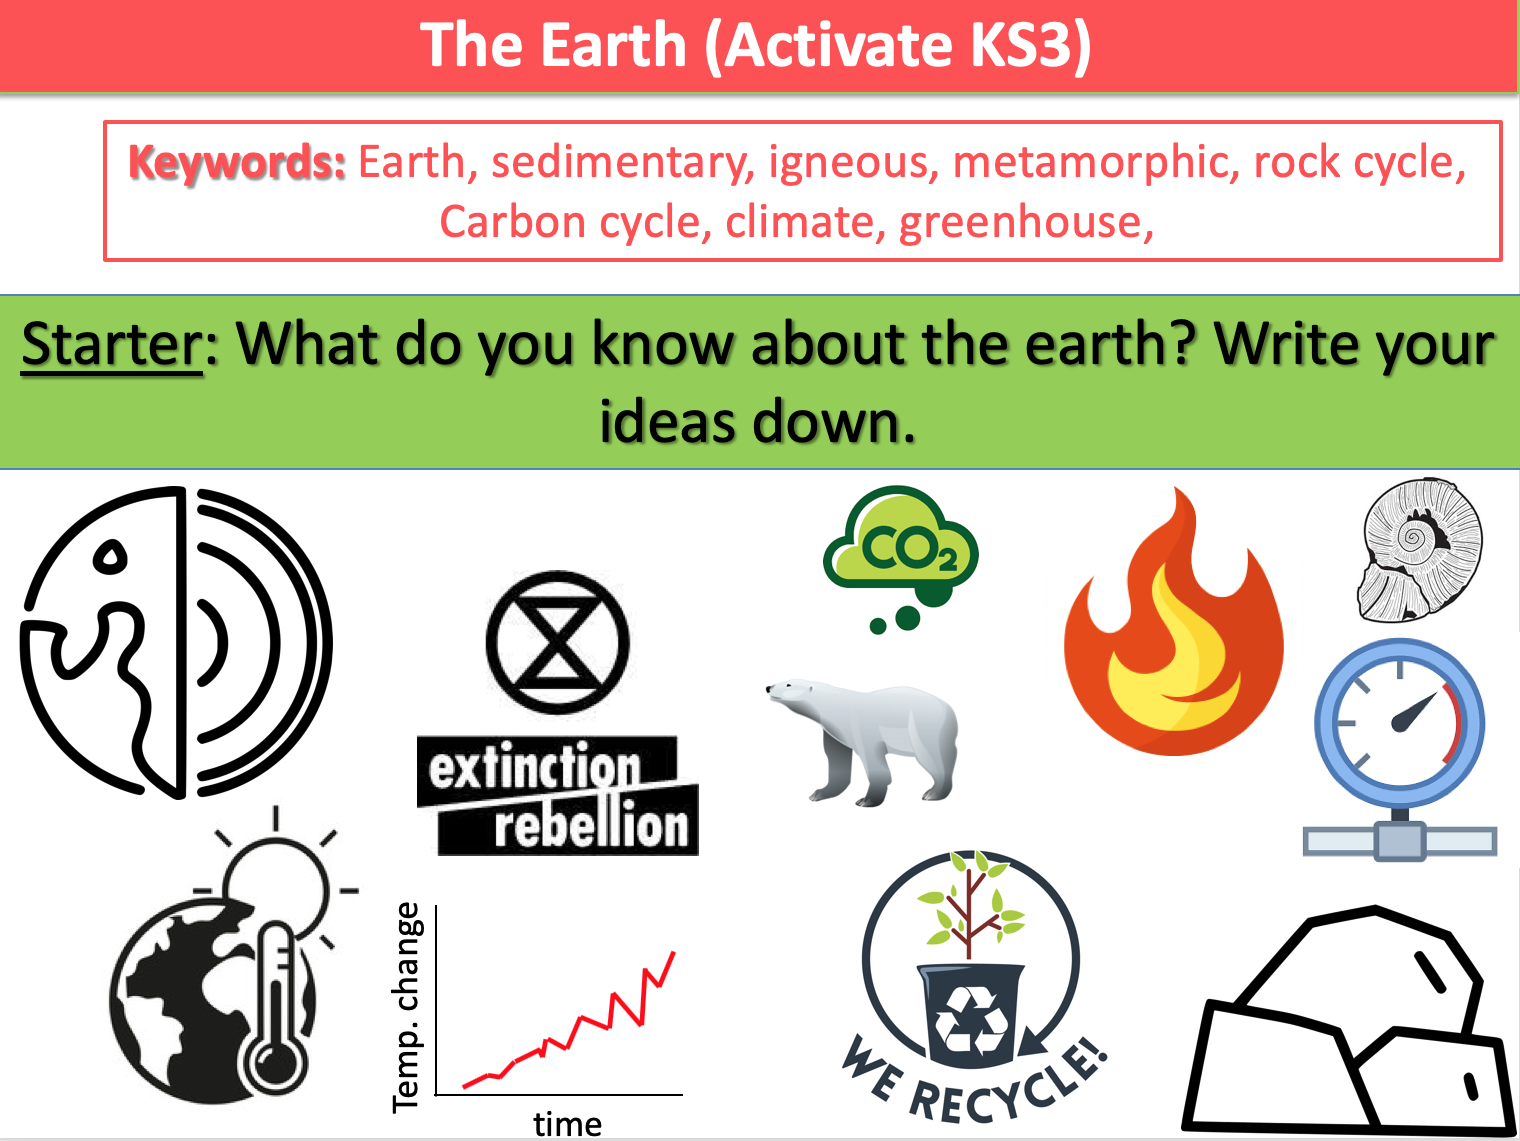 The Earth (Activate KS3)